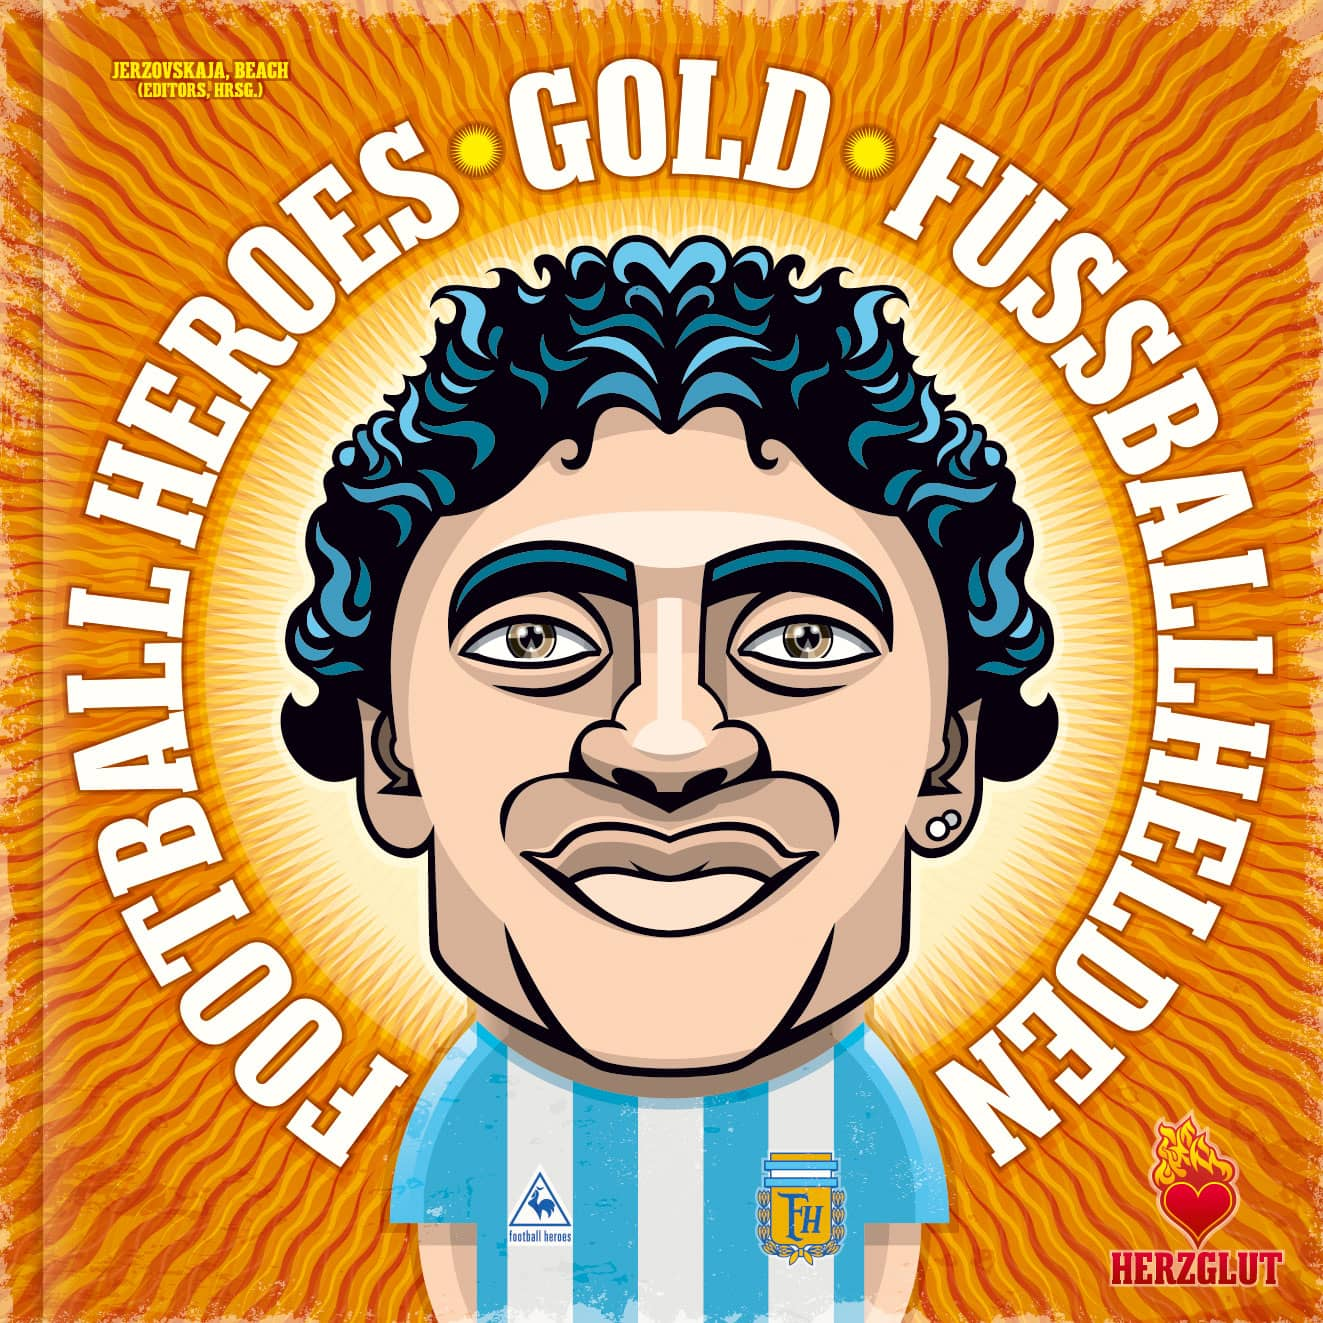 Football Heroes Gold Book Cover by Jerzovskaja - Maradona Illustration - Vector illustration drawn with Adobe Illustrator